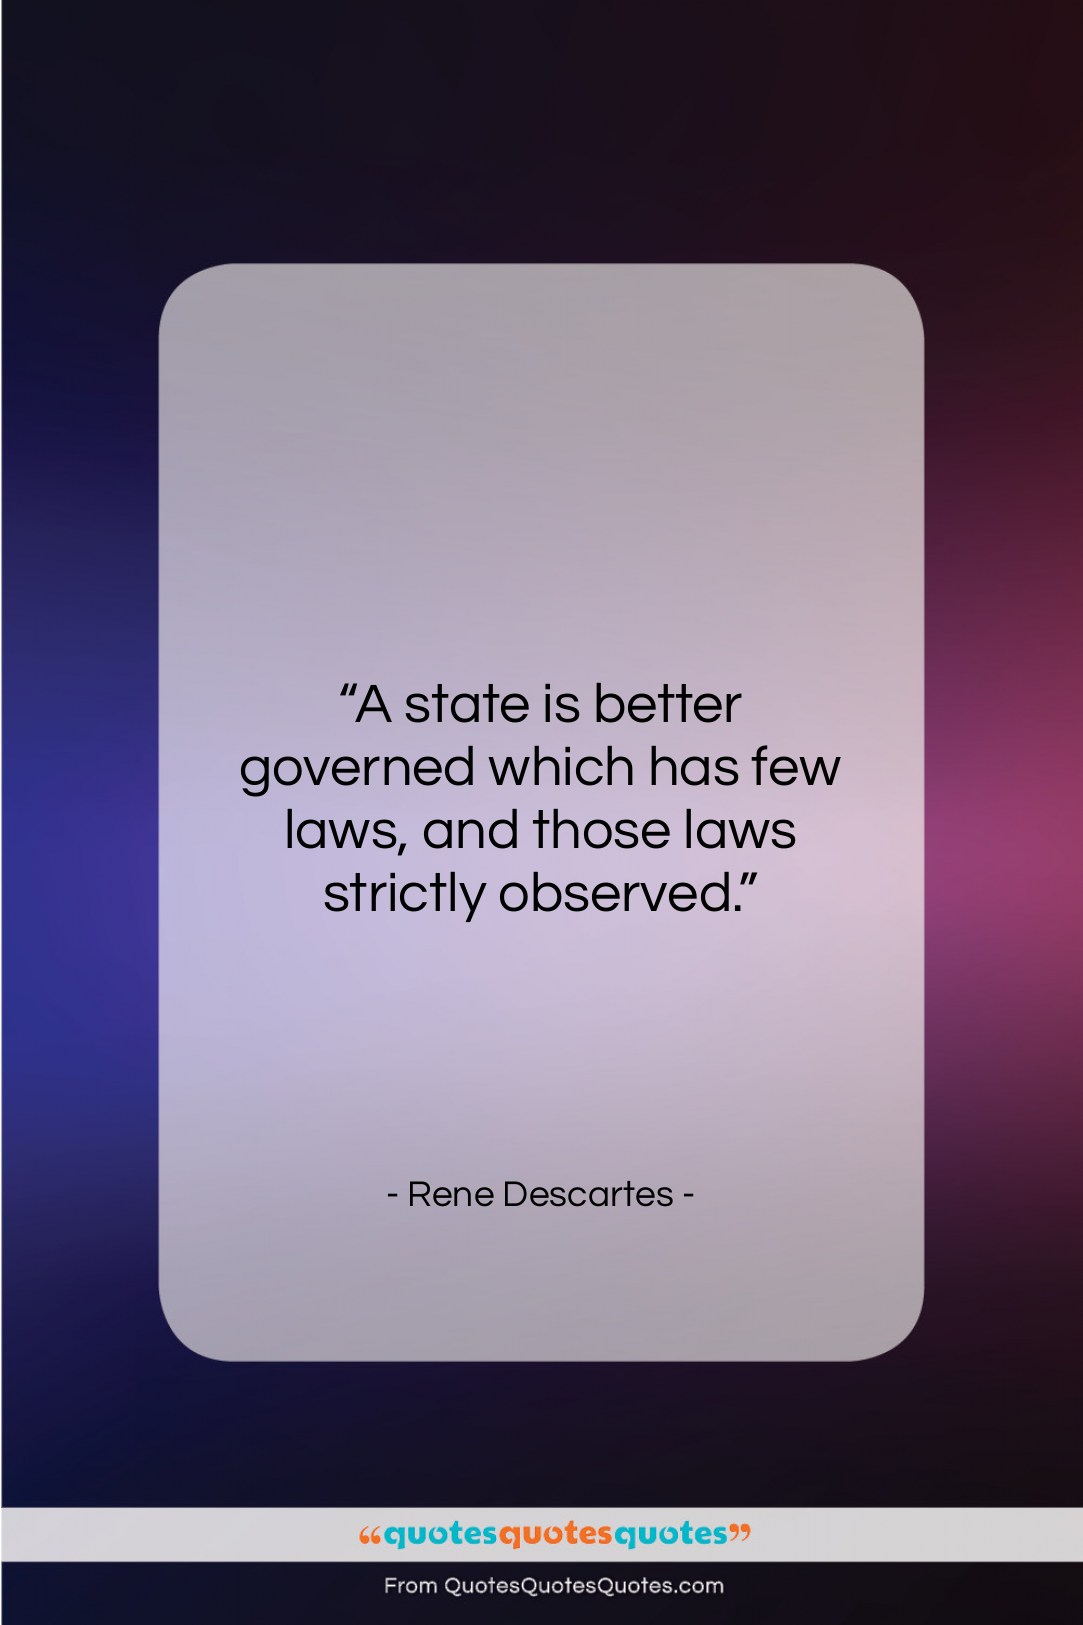 """Rene Descartes quote: """"A state is better governed which has…""""- at QuotesQuotesQuotes.com"""